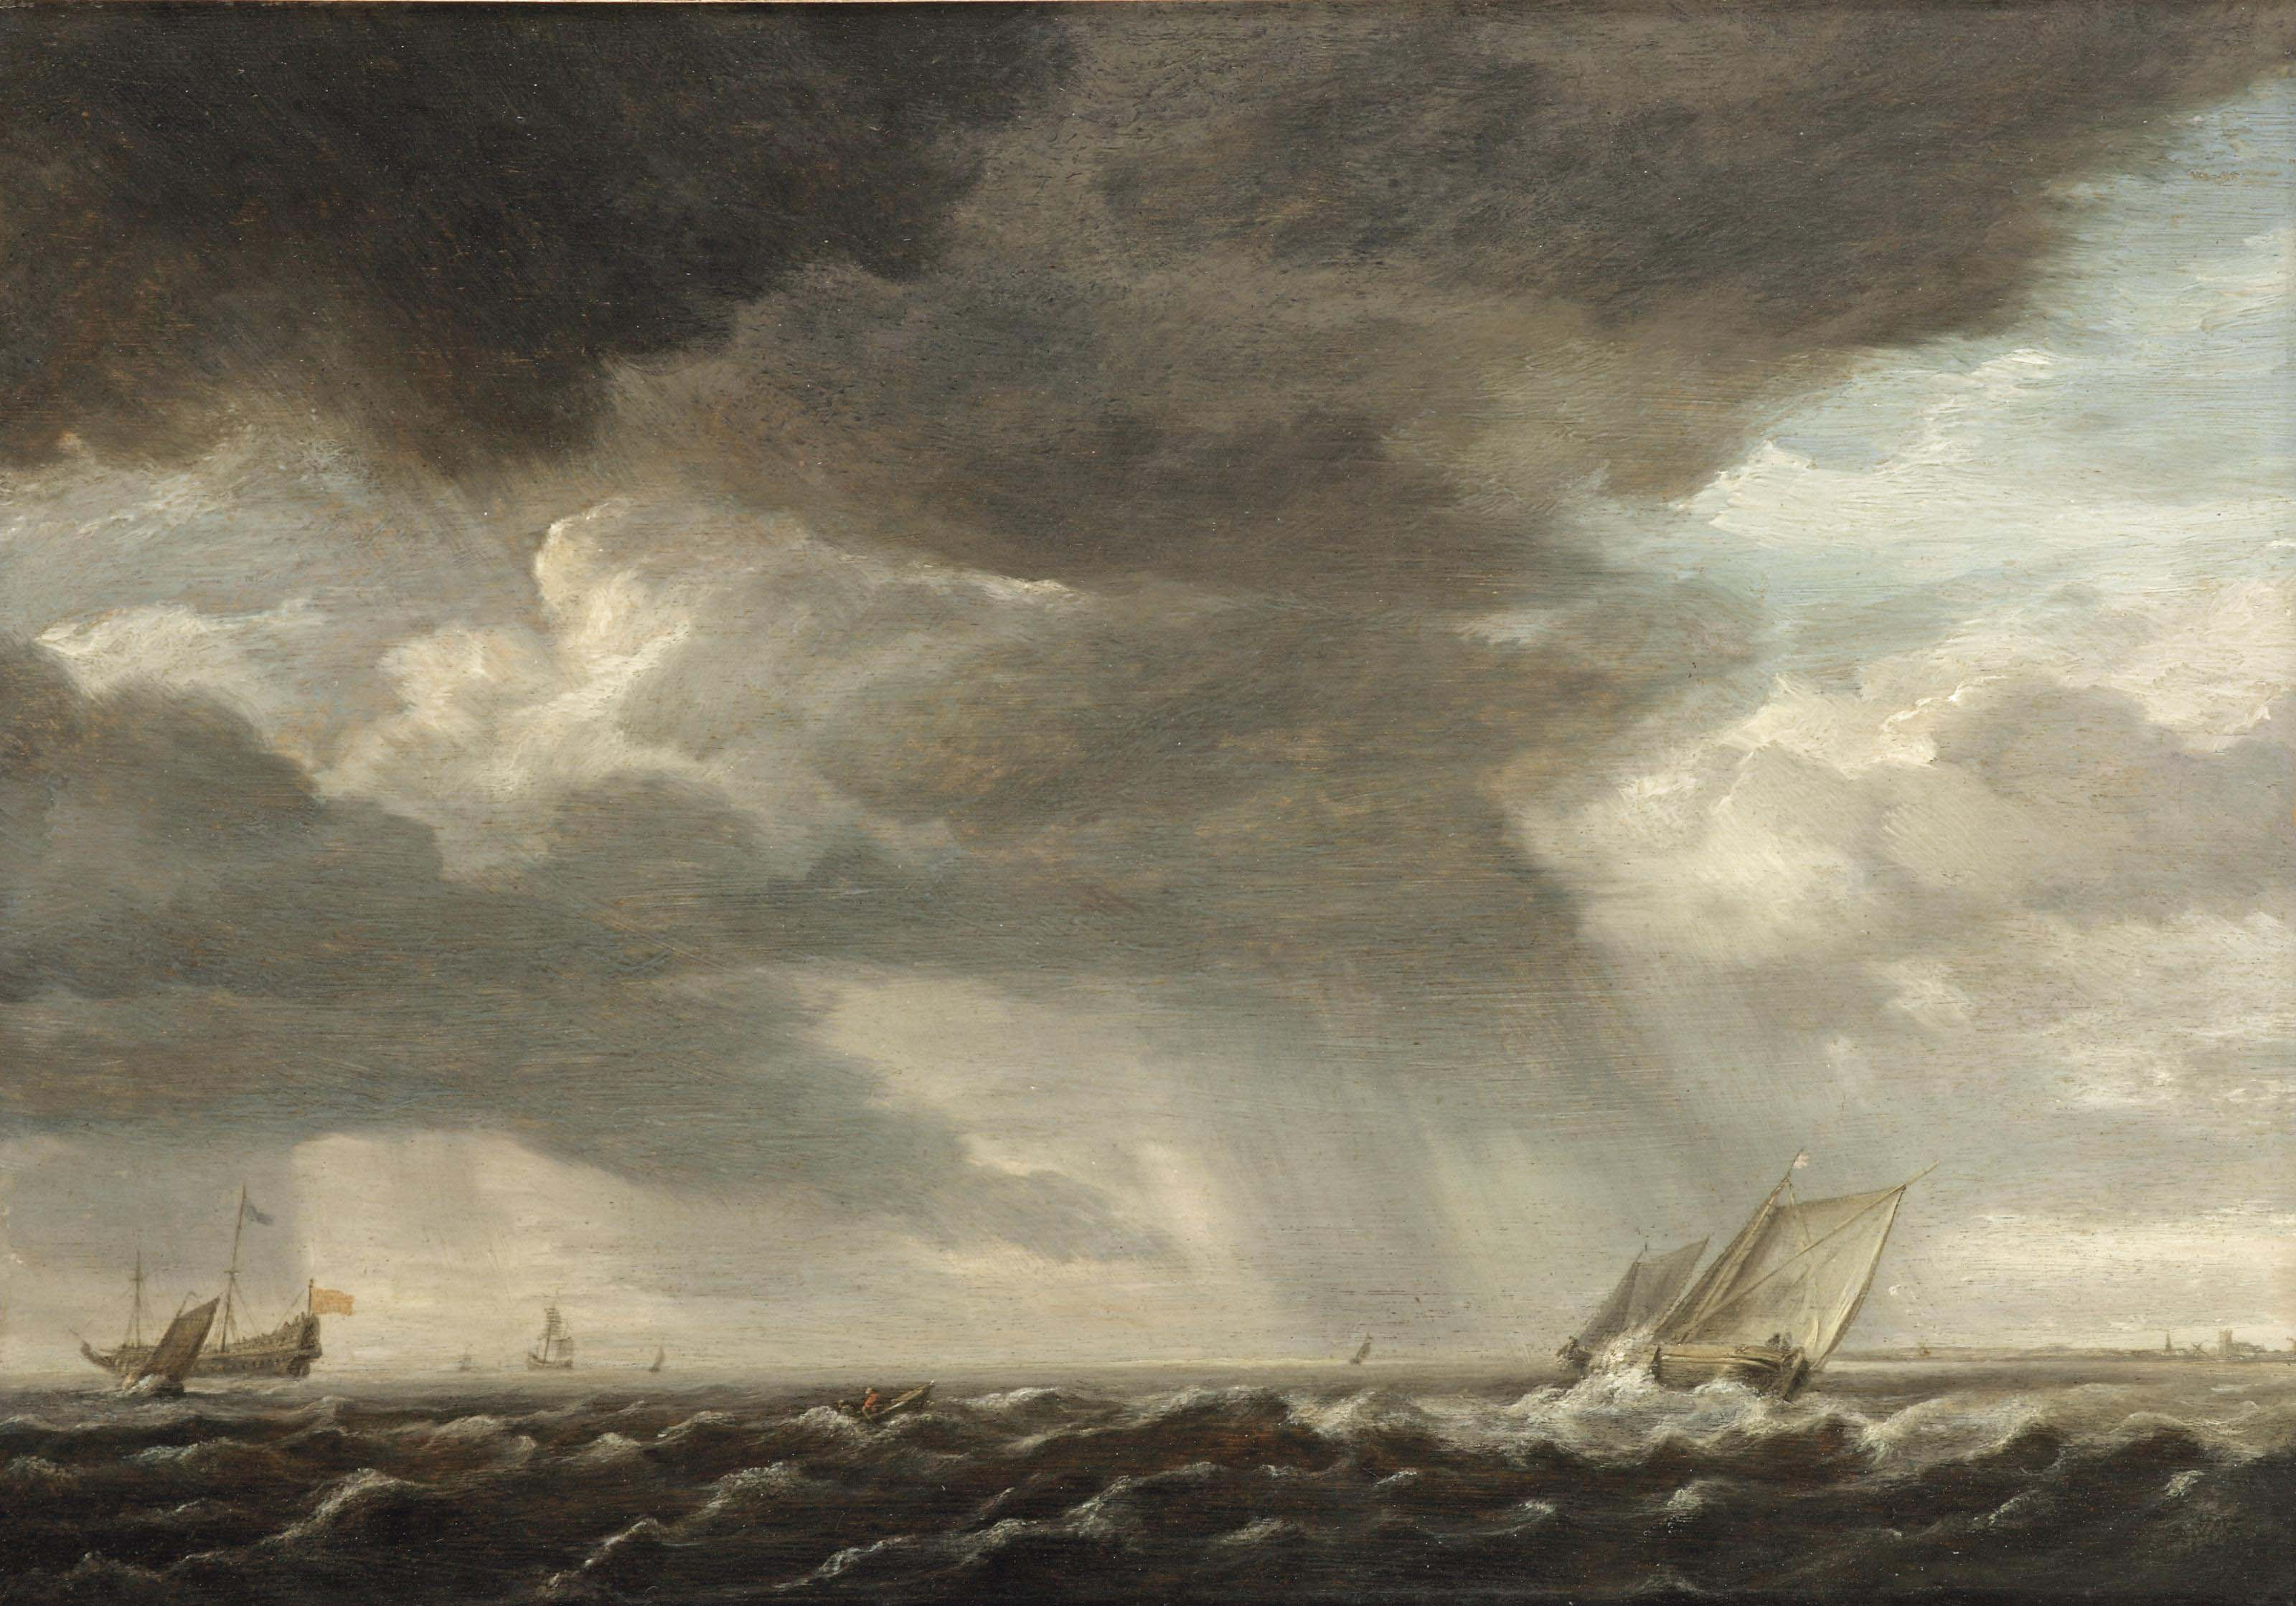 A two-master and smaller sailing vessels in rough waters